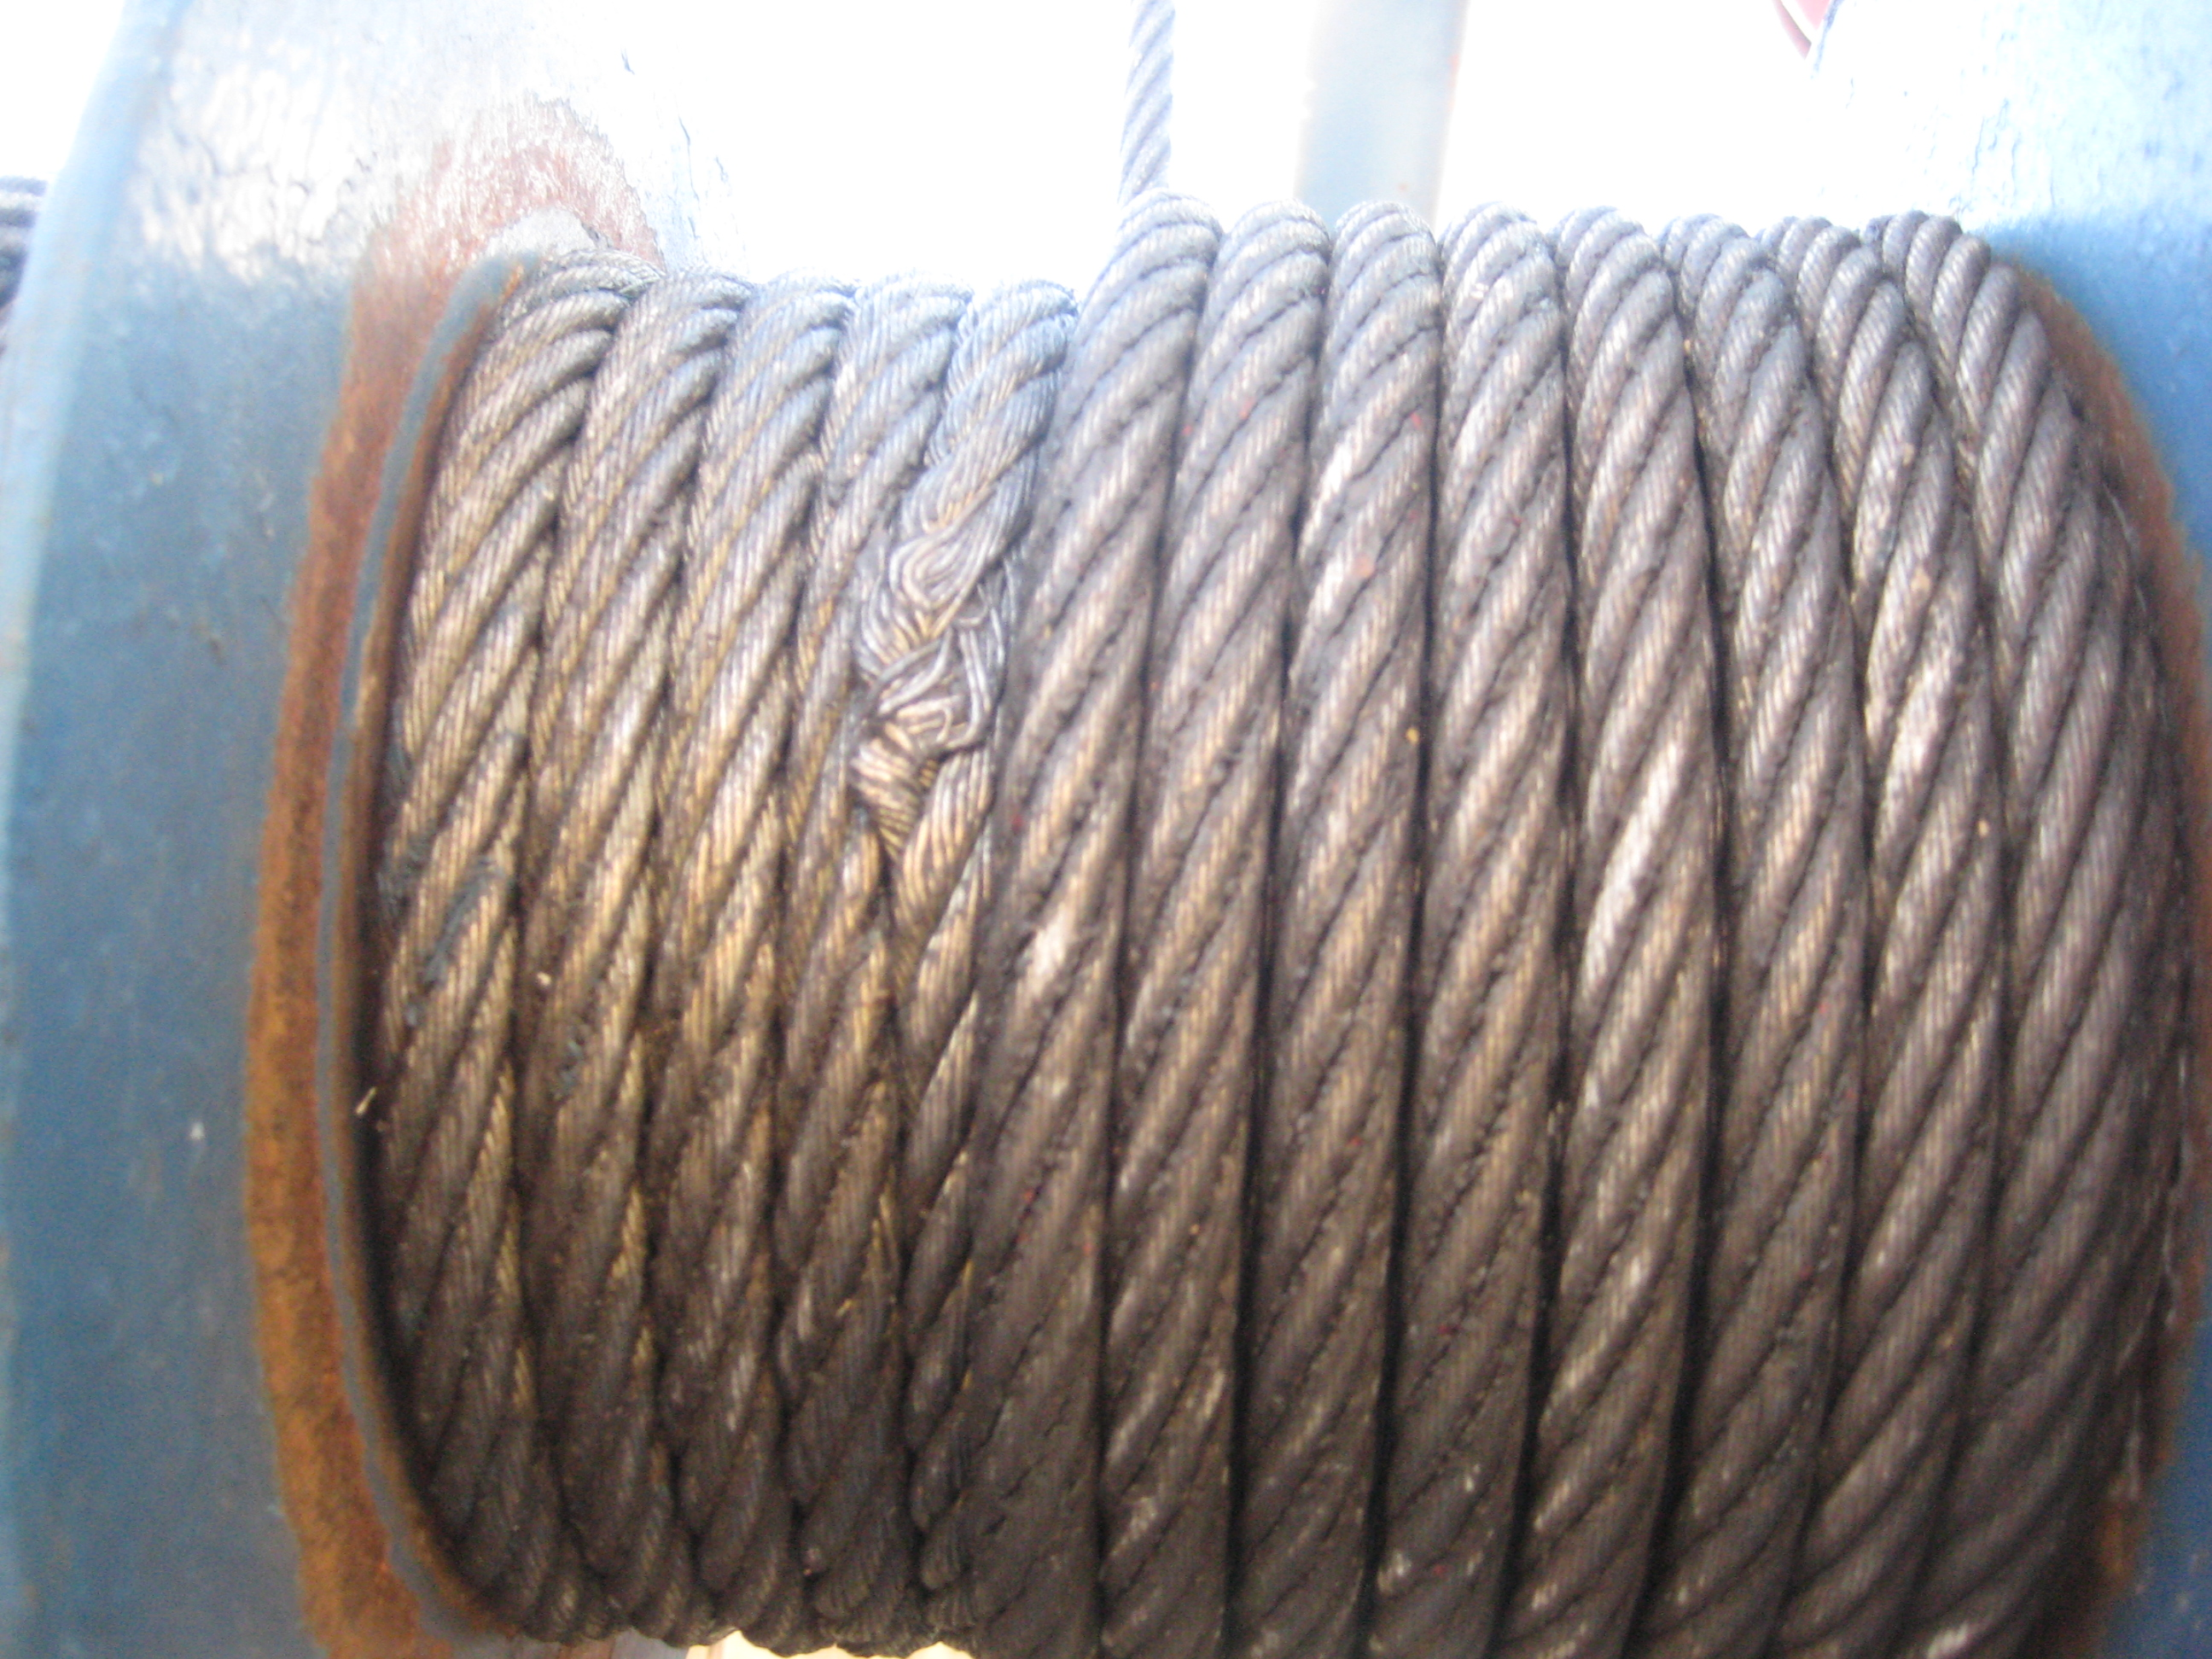 Travel Lift Wire Rope | U.S. Hoists